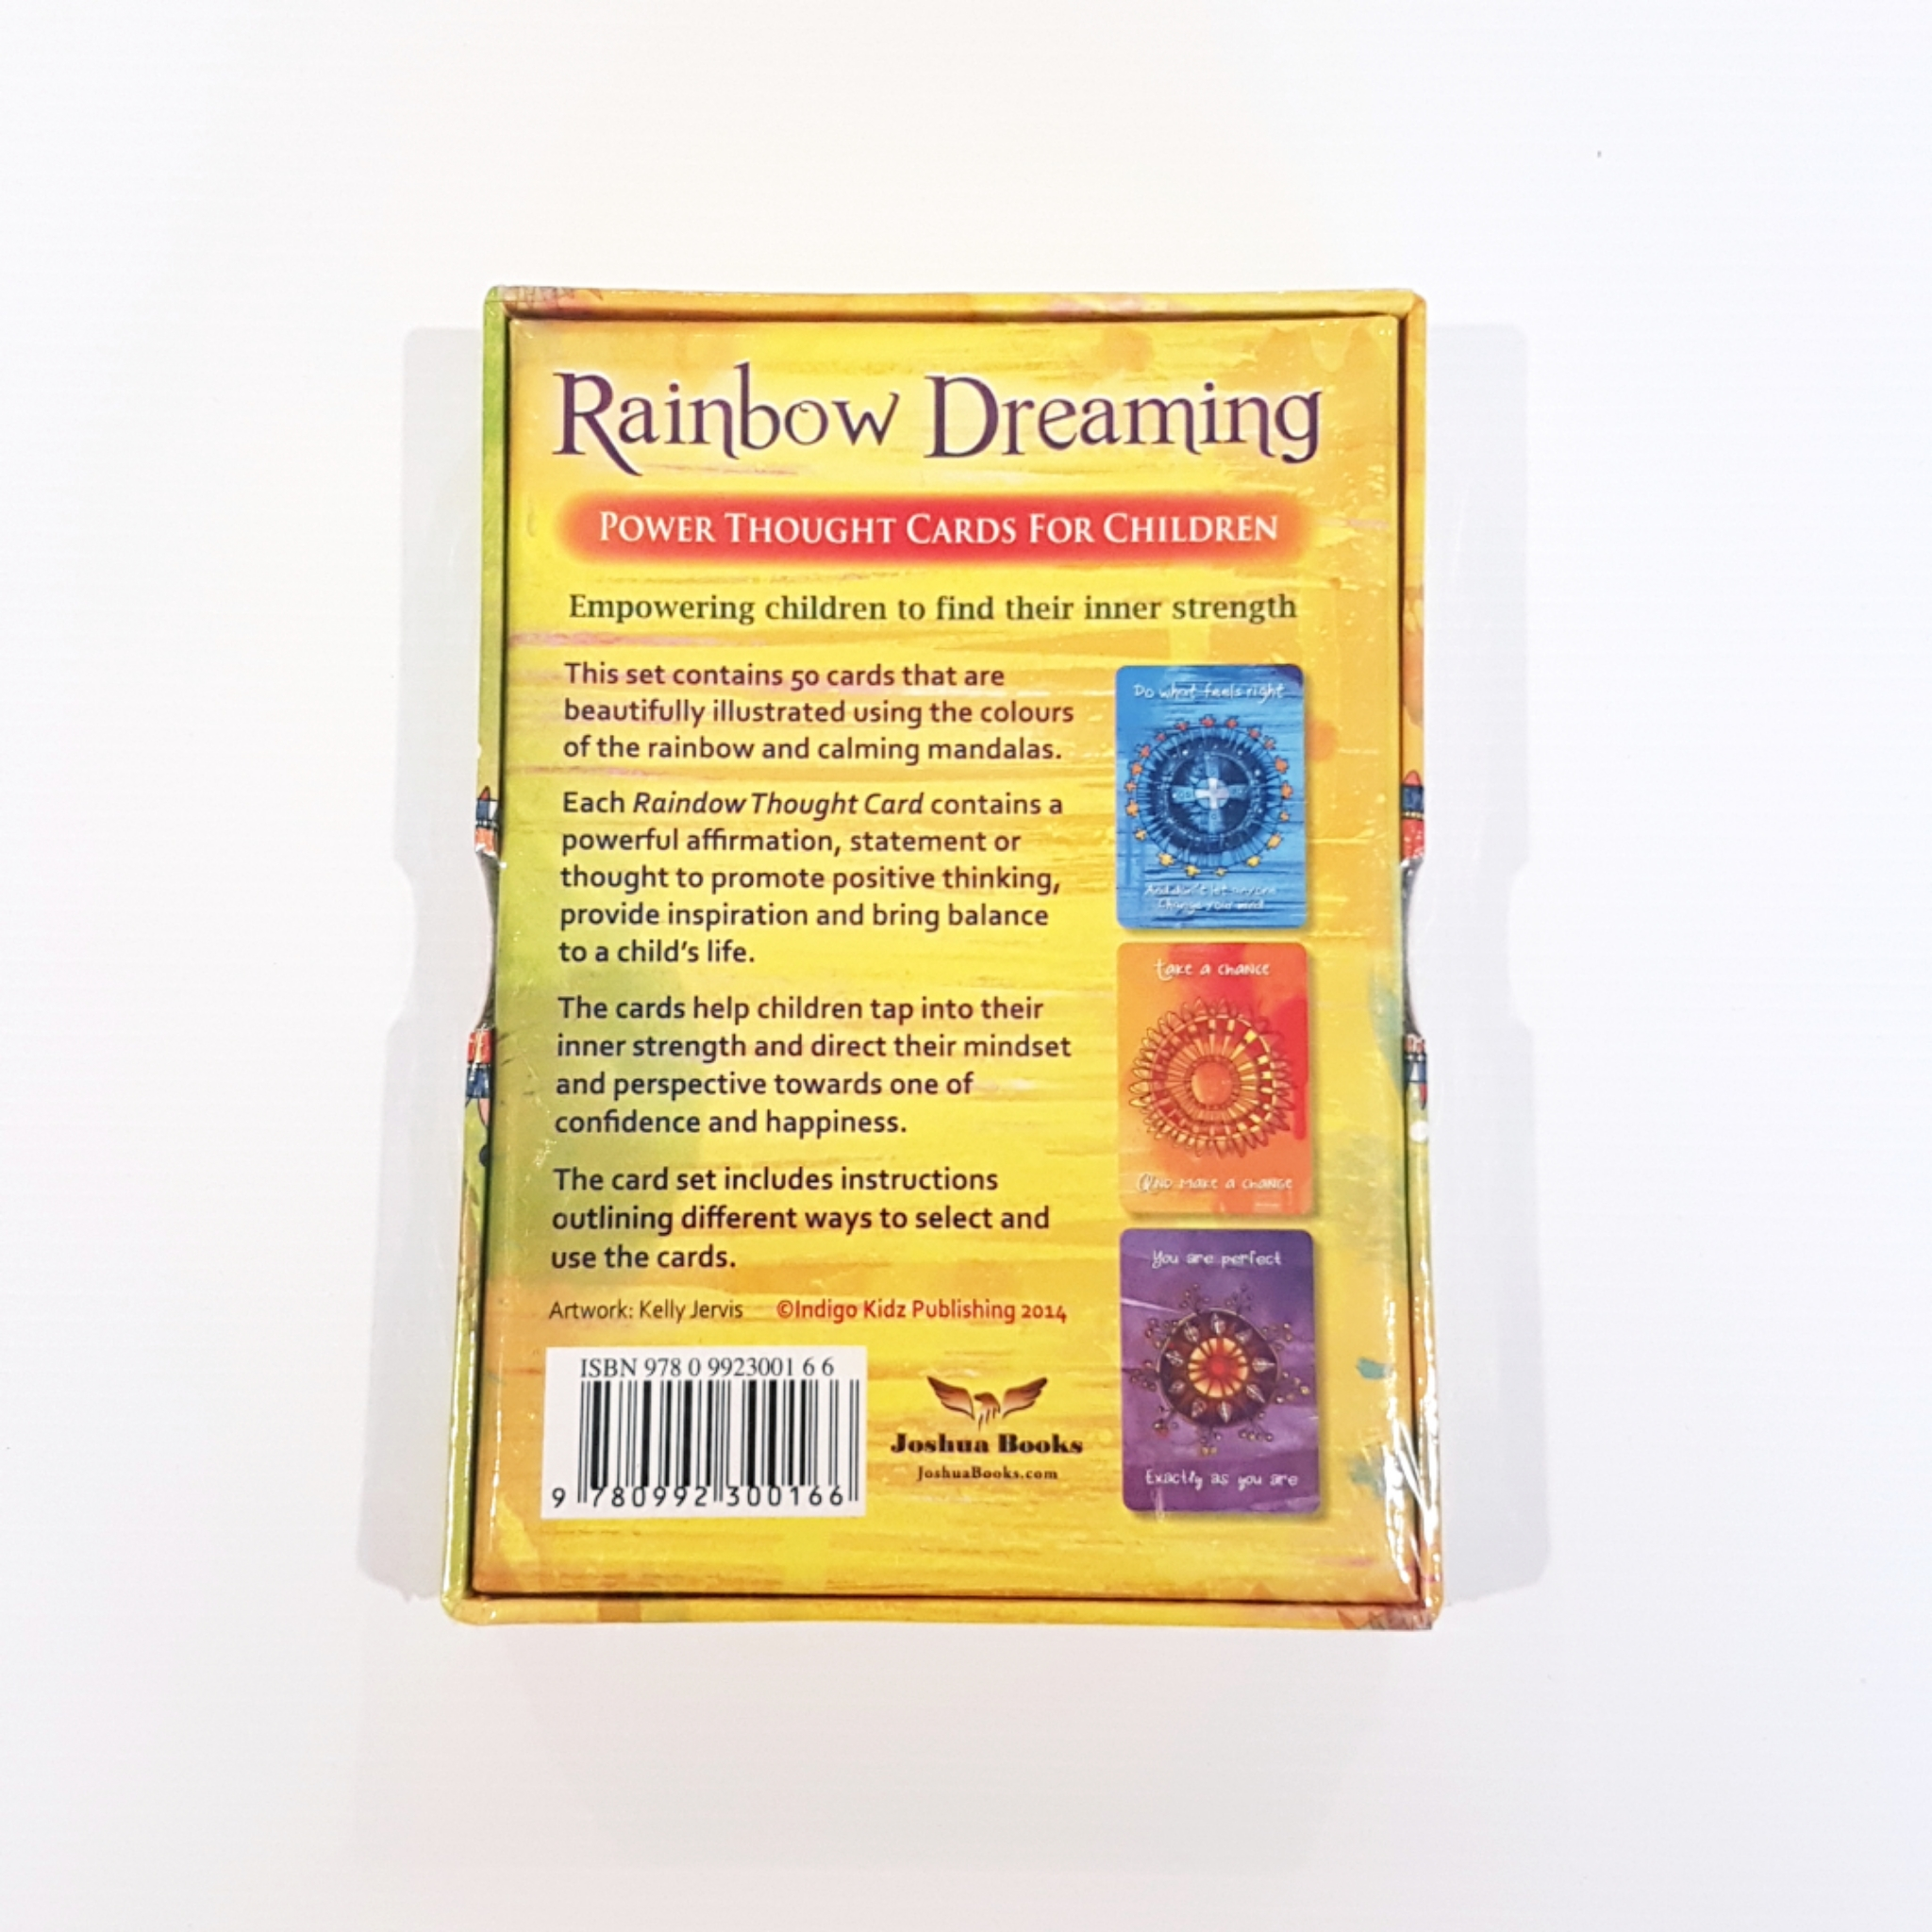 Rainbow Dreaming: Power Thought Cards for Children